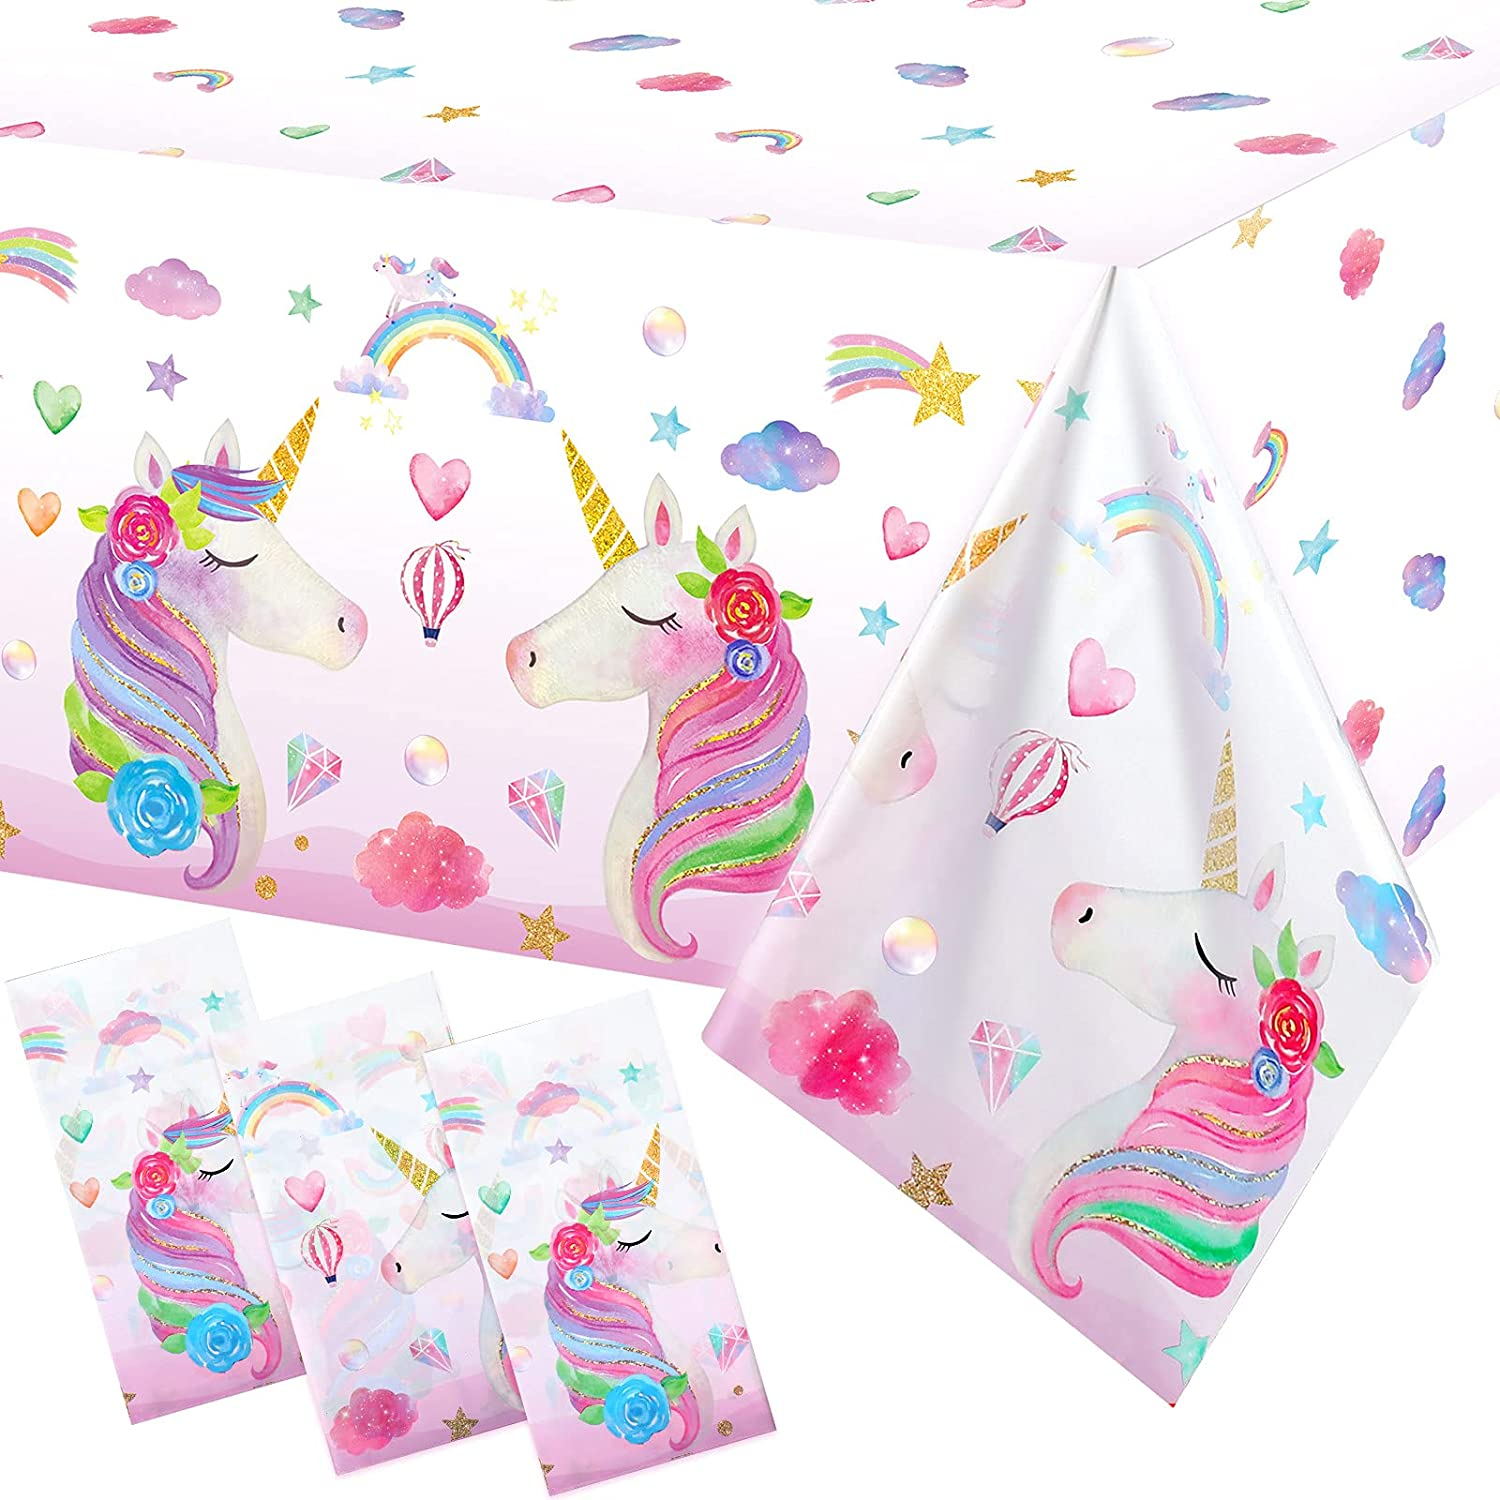 3 Pieces Unicorn SALENEW very popular! Table Cloth Free shipping Tablecloths Covers Plastic